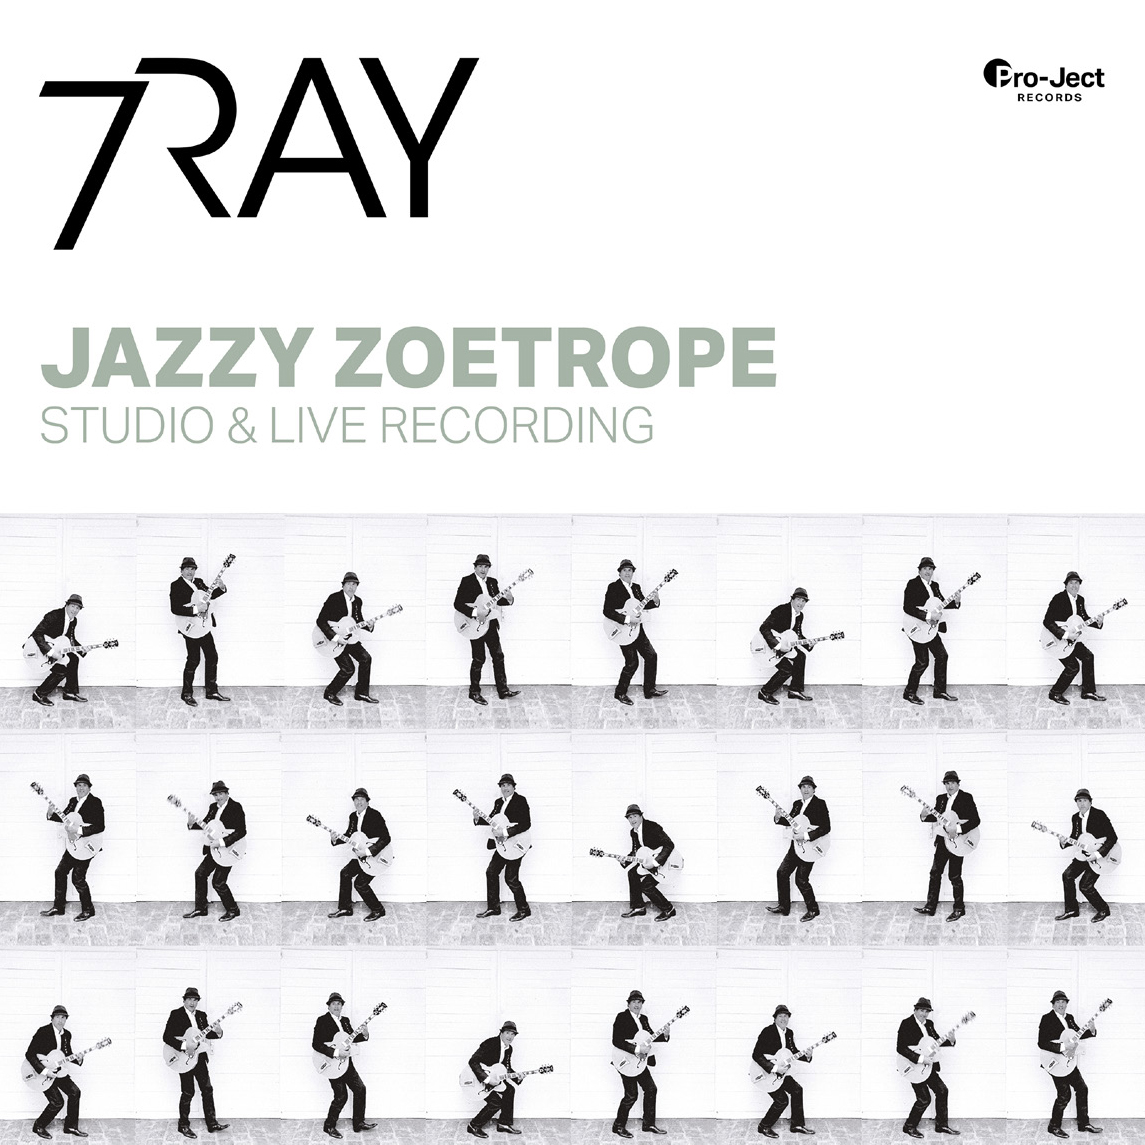 7RAY Jazzy Zoetrope: Studio & Live Recording Master Quality Reel To Reel Tape (2 Reels)